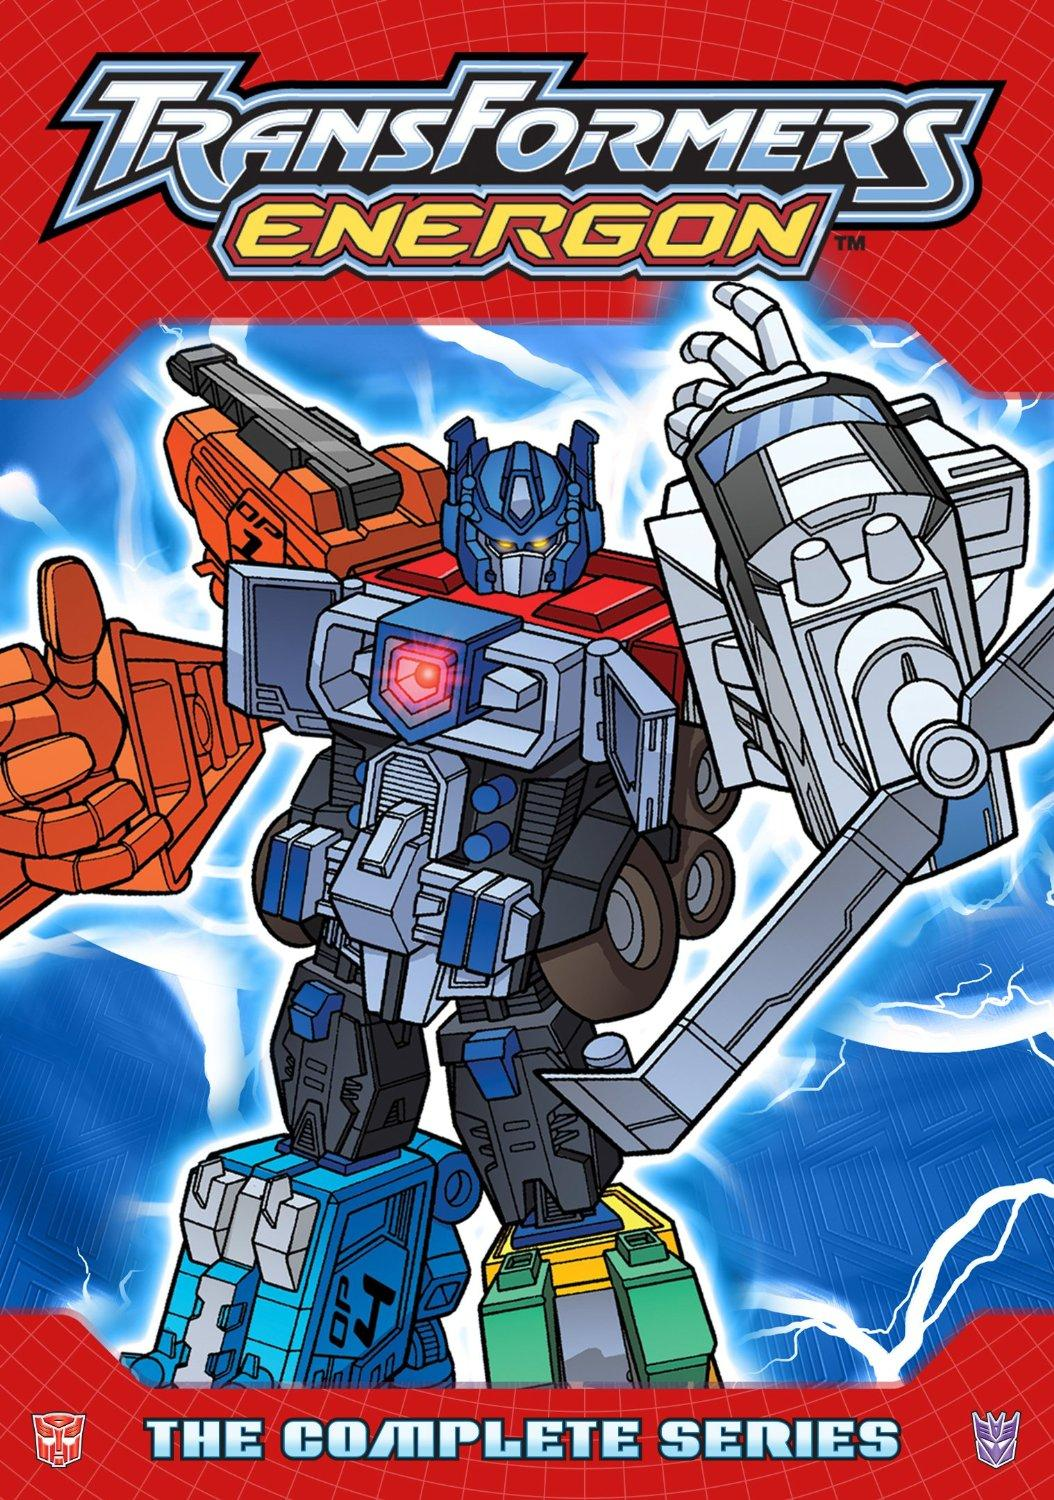 Transformers: Energon, DVD Review!